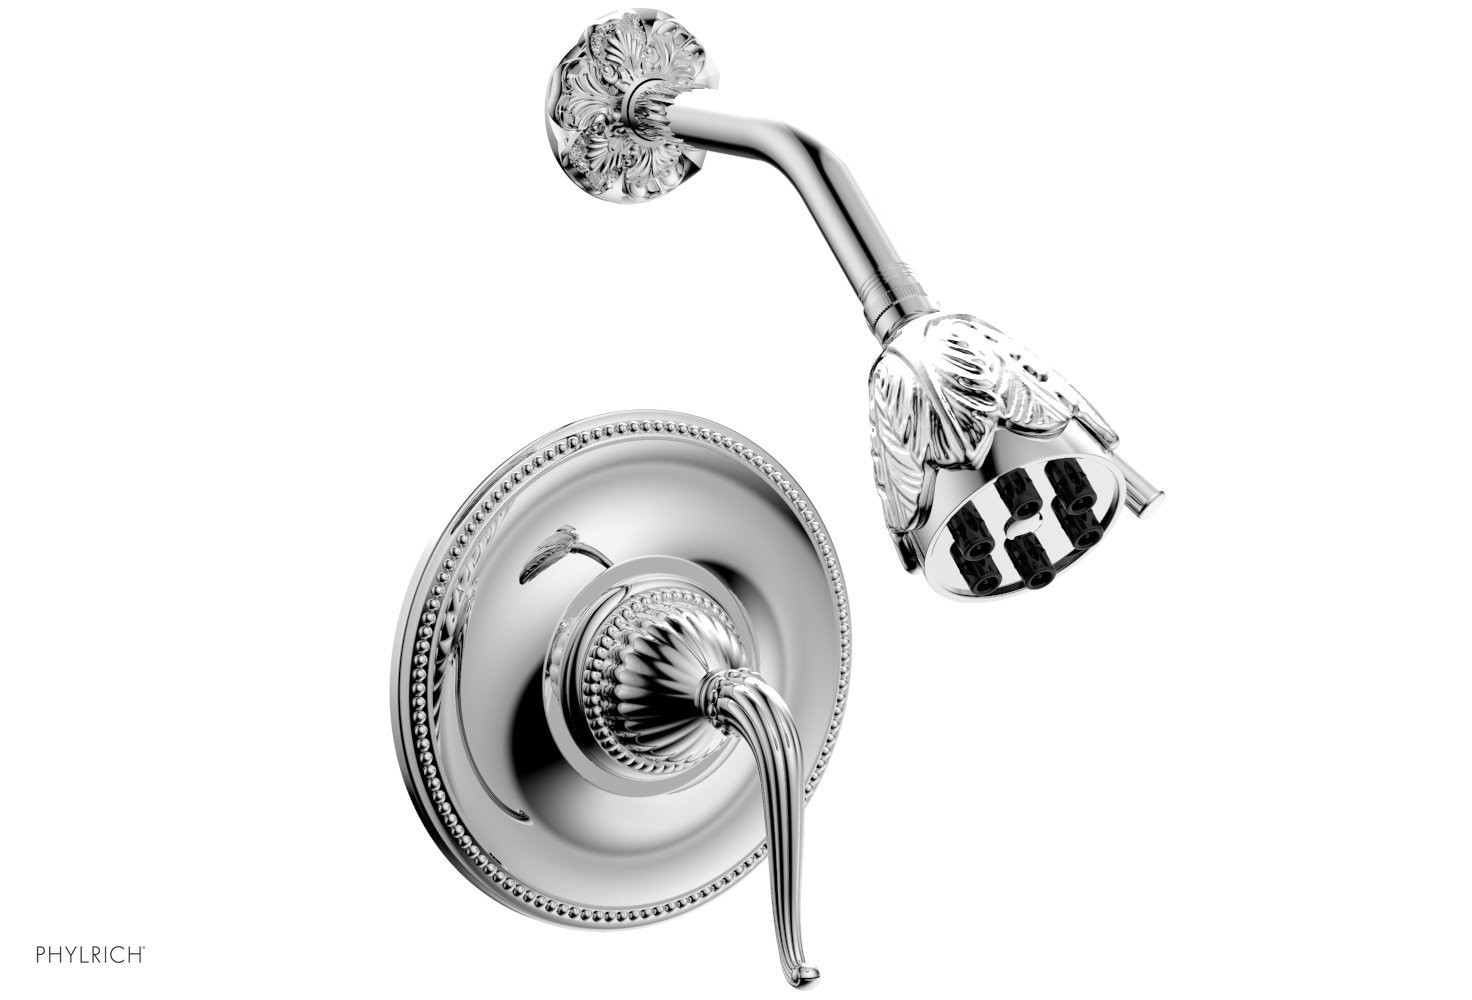 PHYLRICH PB3141 GEORGIAN & BARCELONA WALL MOUNT PRESSURE BALANCE SHOWER SET WITH LEVER HANDLE